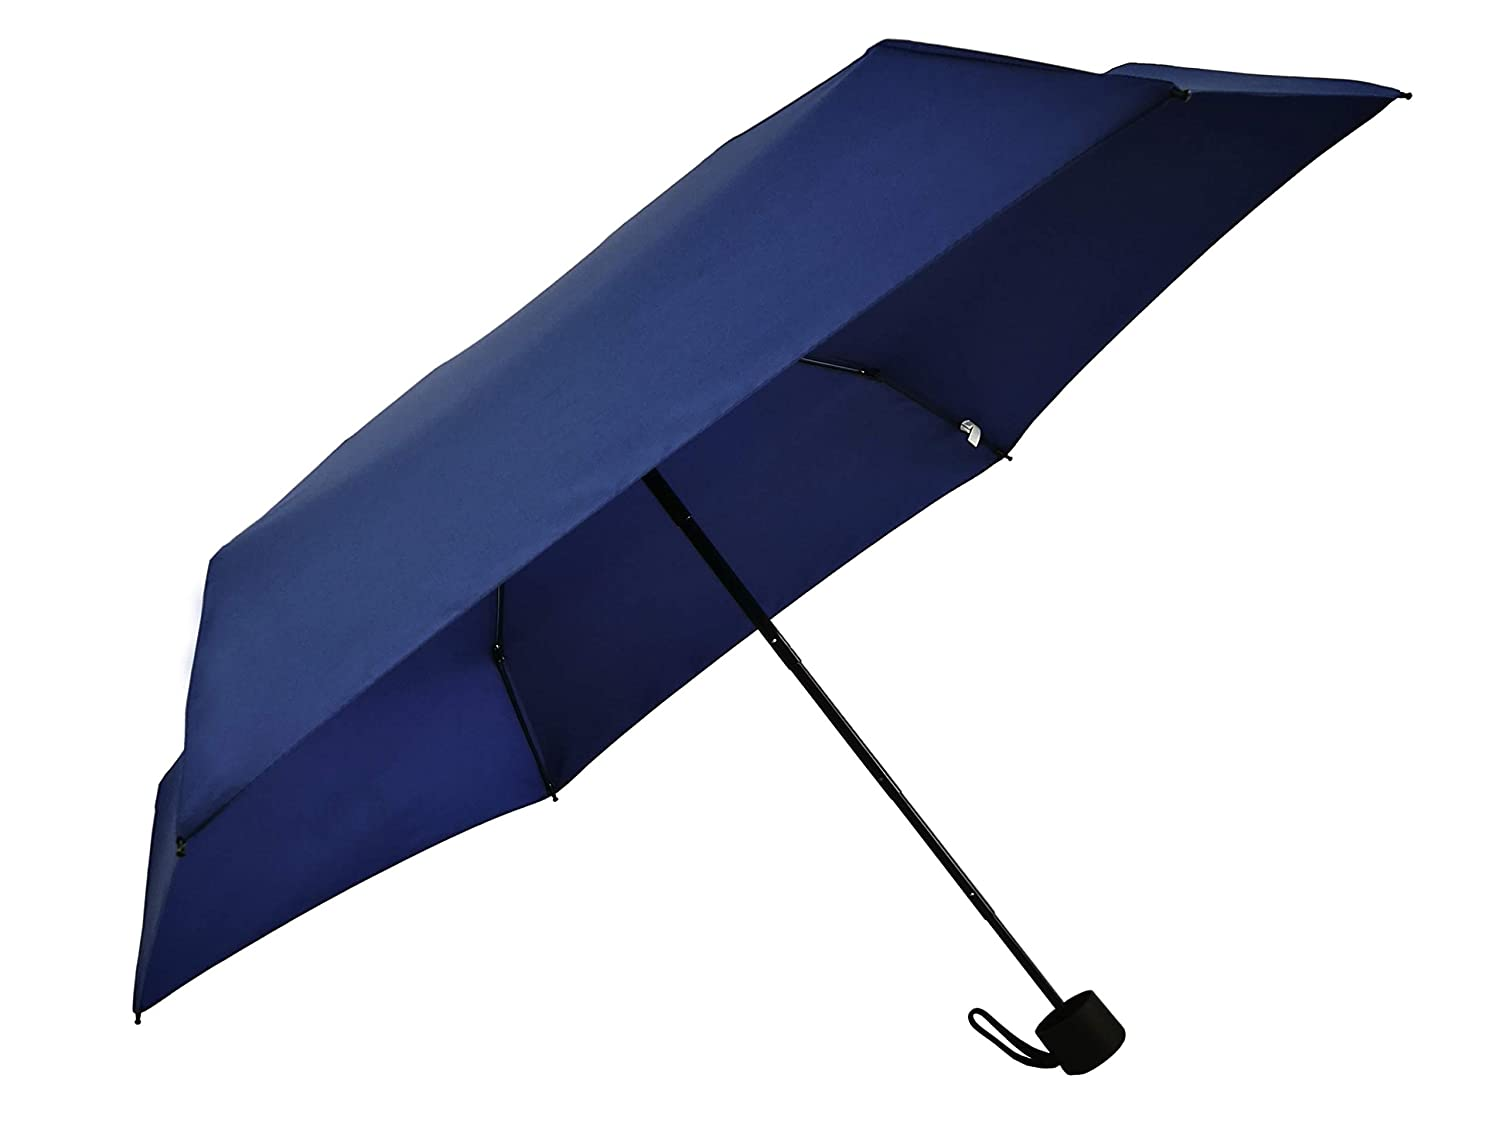 Protective and Portable crackajack Lightweight Travel Umbrella Your Intimate Helper in This Season YU CHANG TRADING Compact